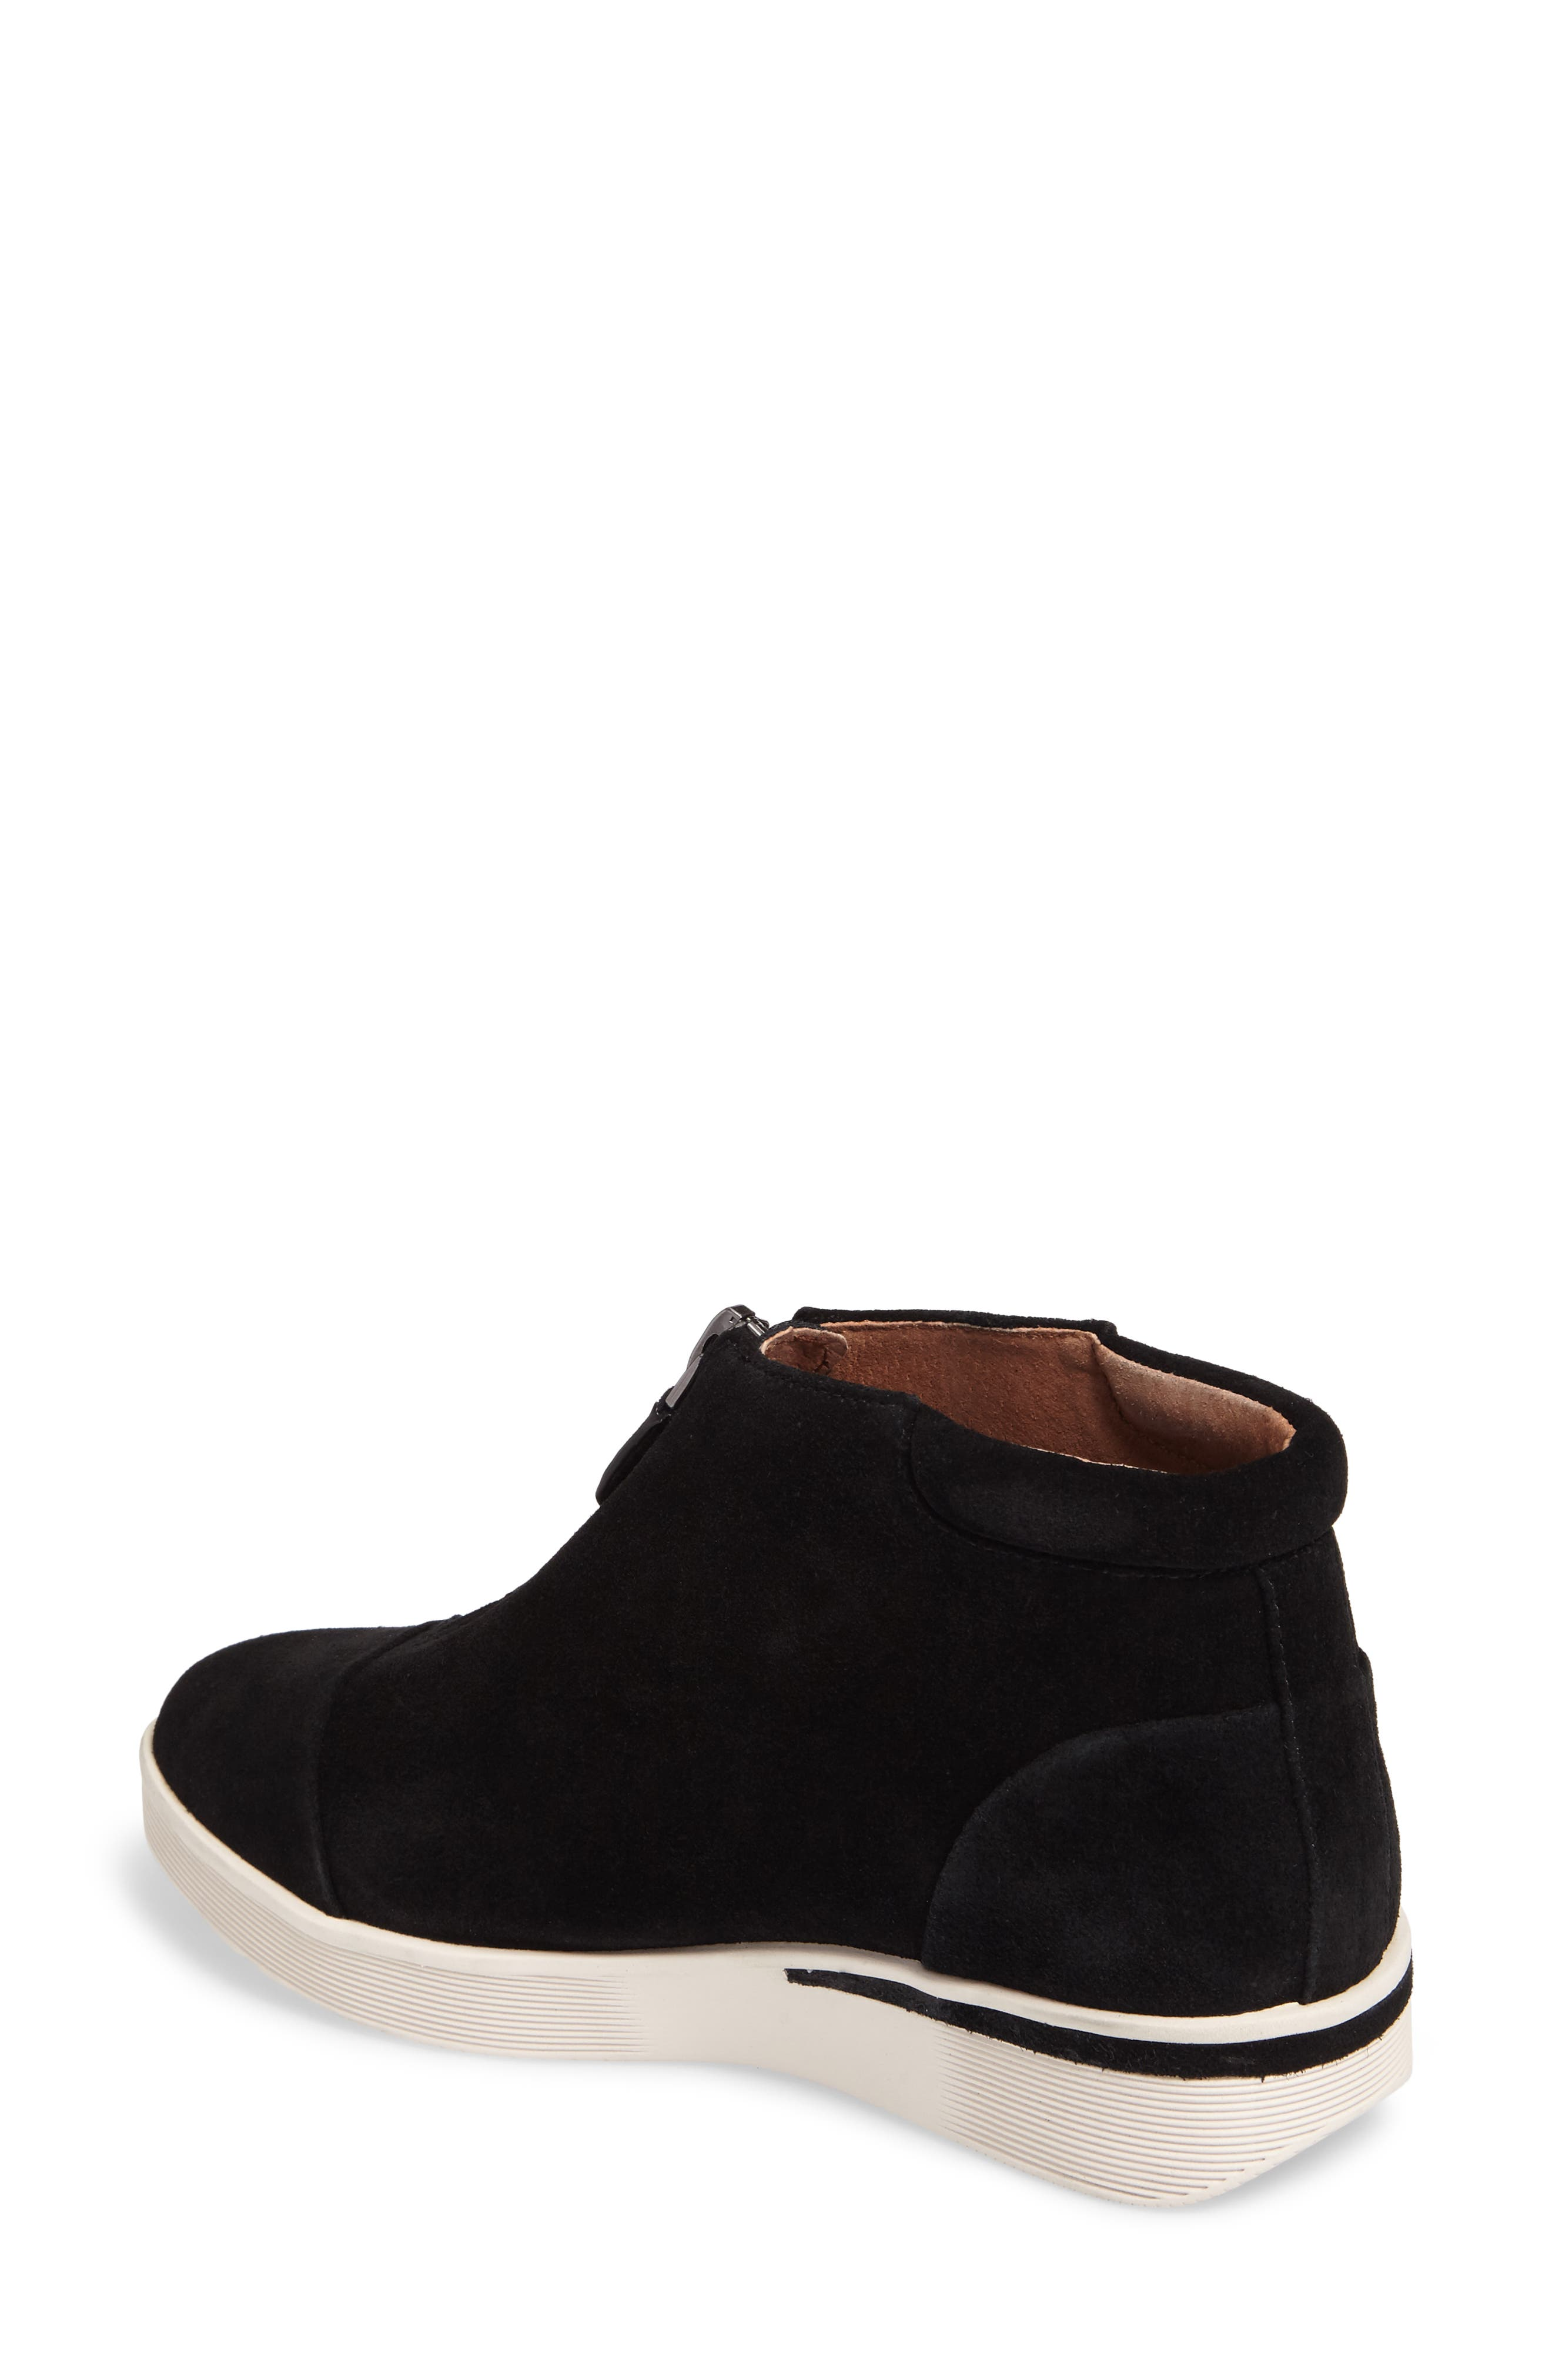 GENTLE SOULS BY KENNETH COLE, Hazel Fay High Top Sneaker, Alternate thumbnail 2, color, BLACK SUEDE